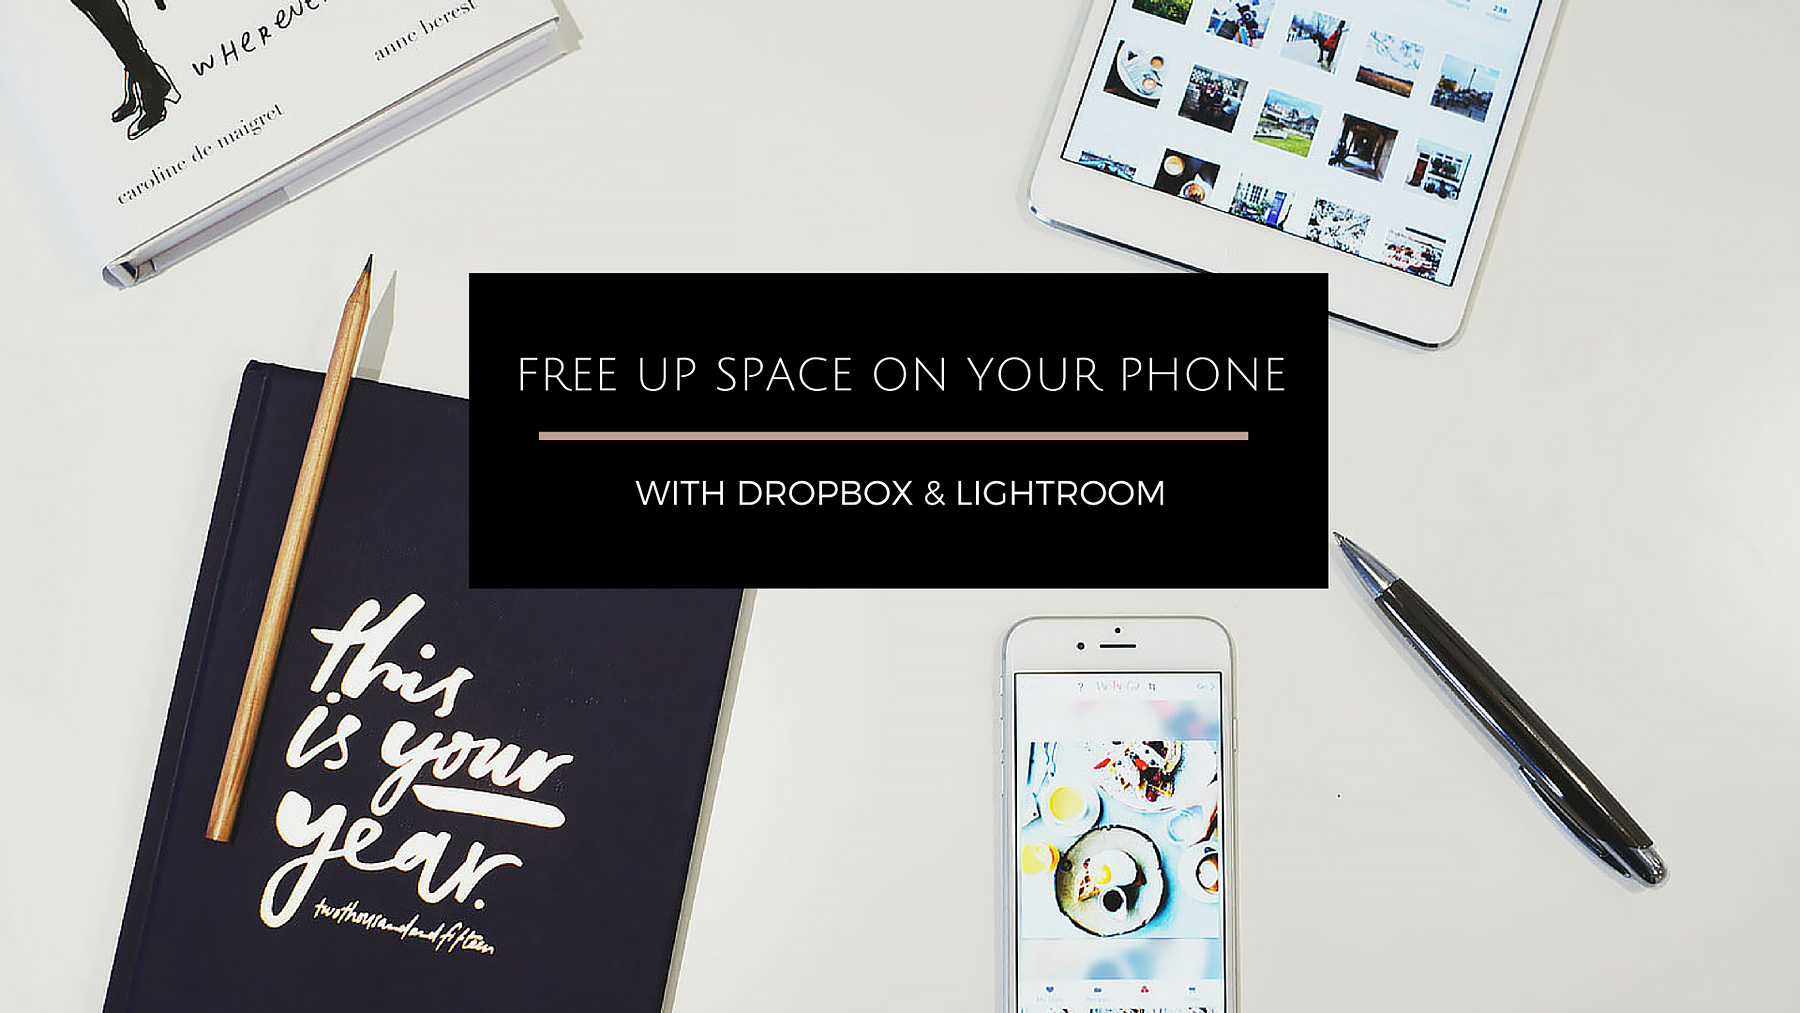 How To Free Up E On Your Phone With Dropbox Lightroom A Great Life